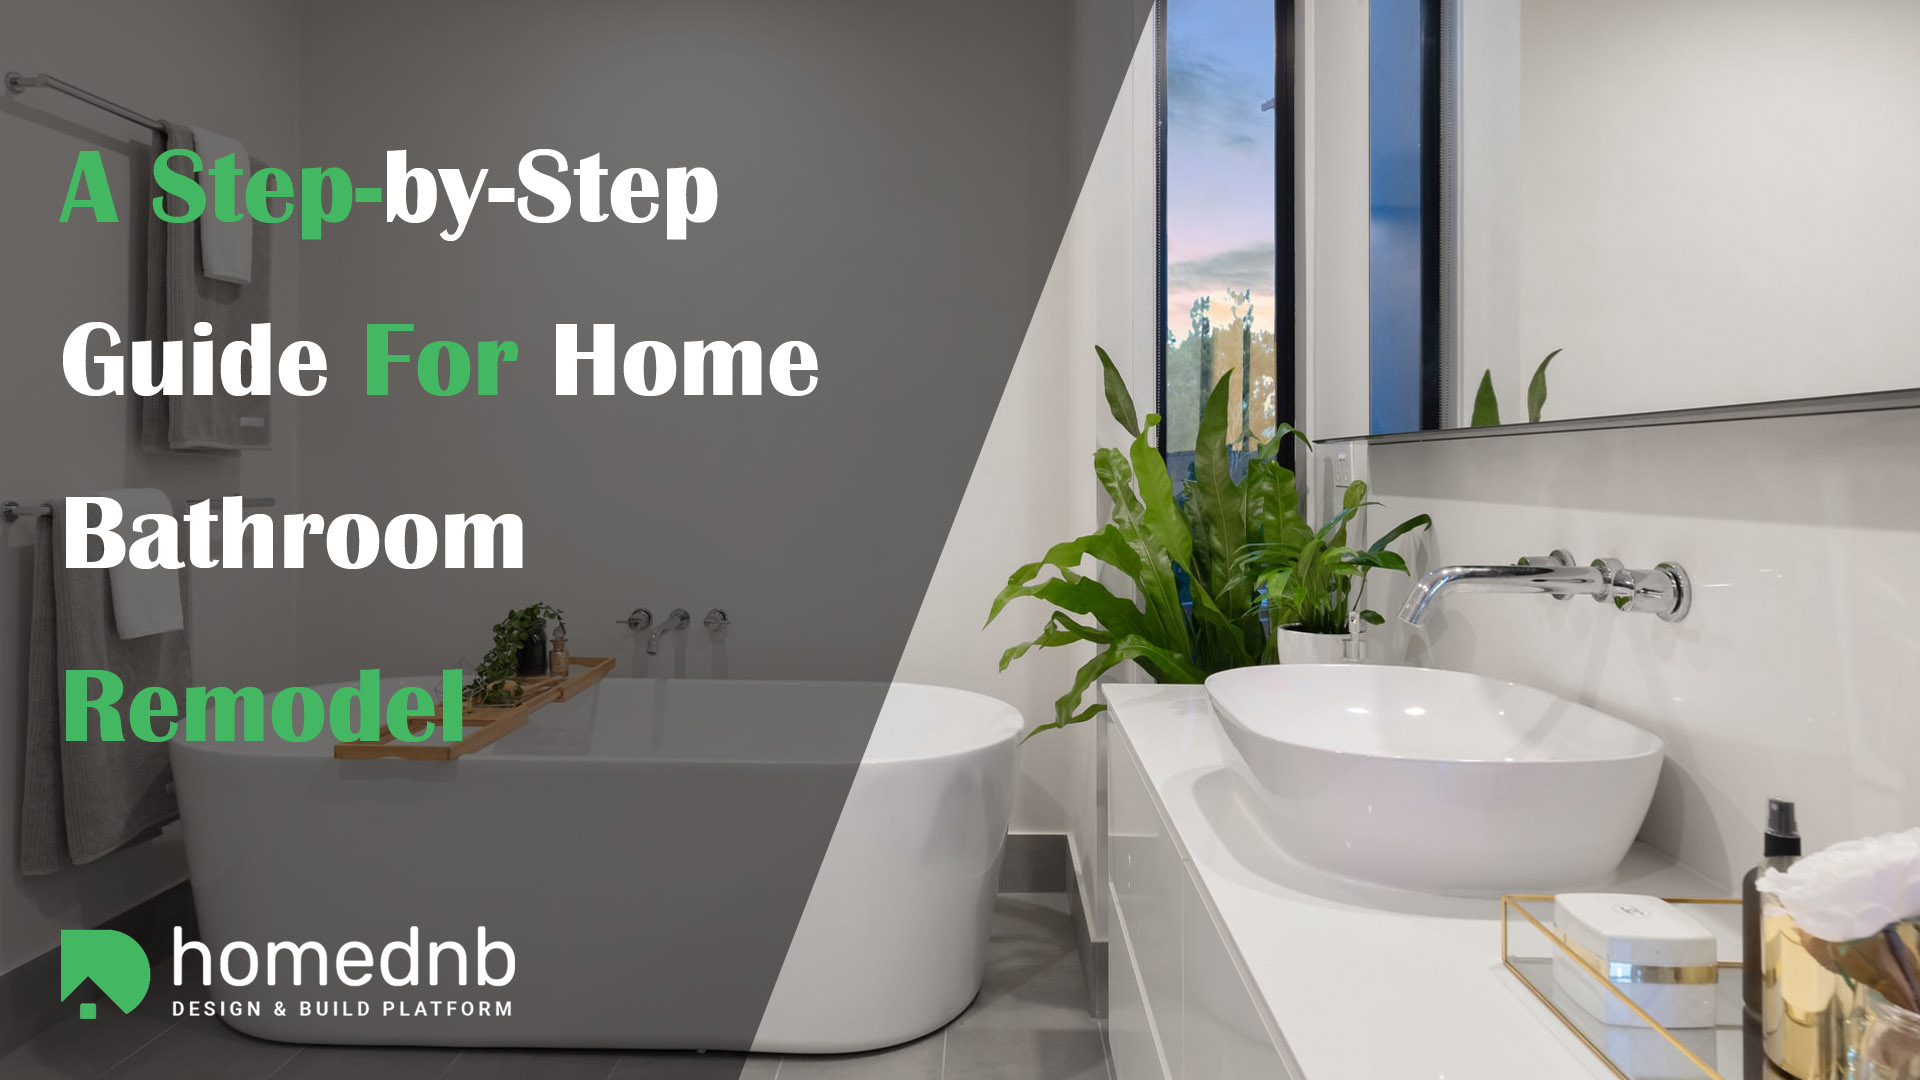 A Step-by-Step Guide For Home Bathroom Remodel